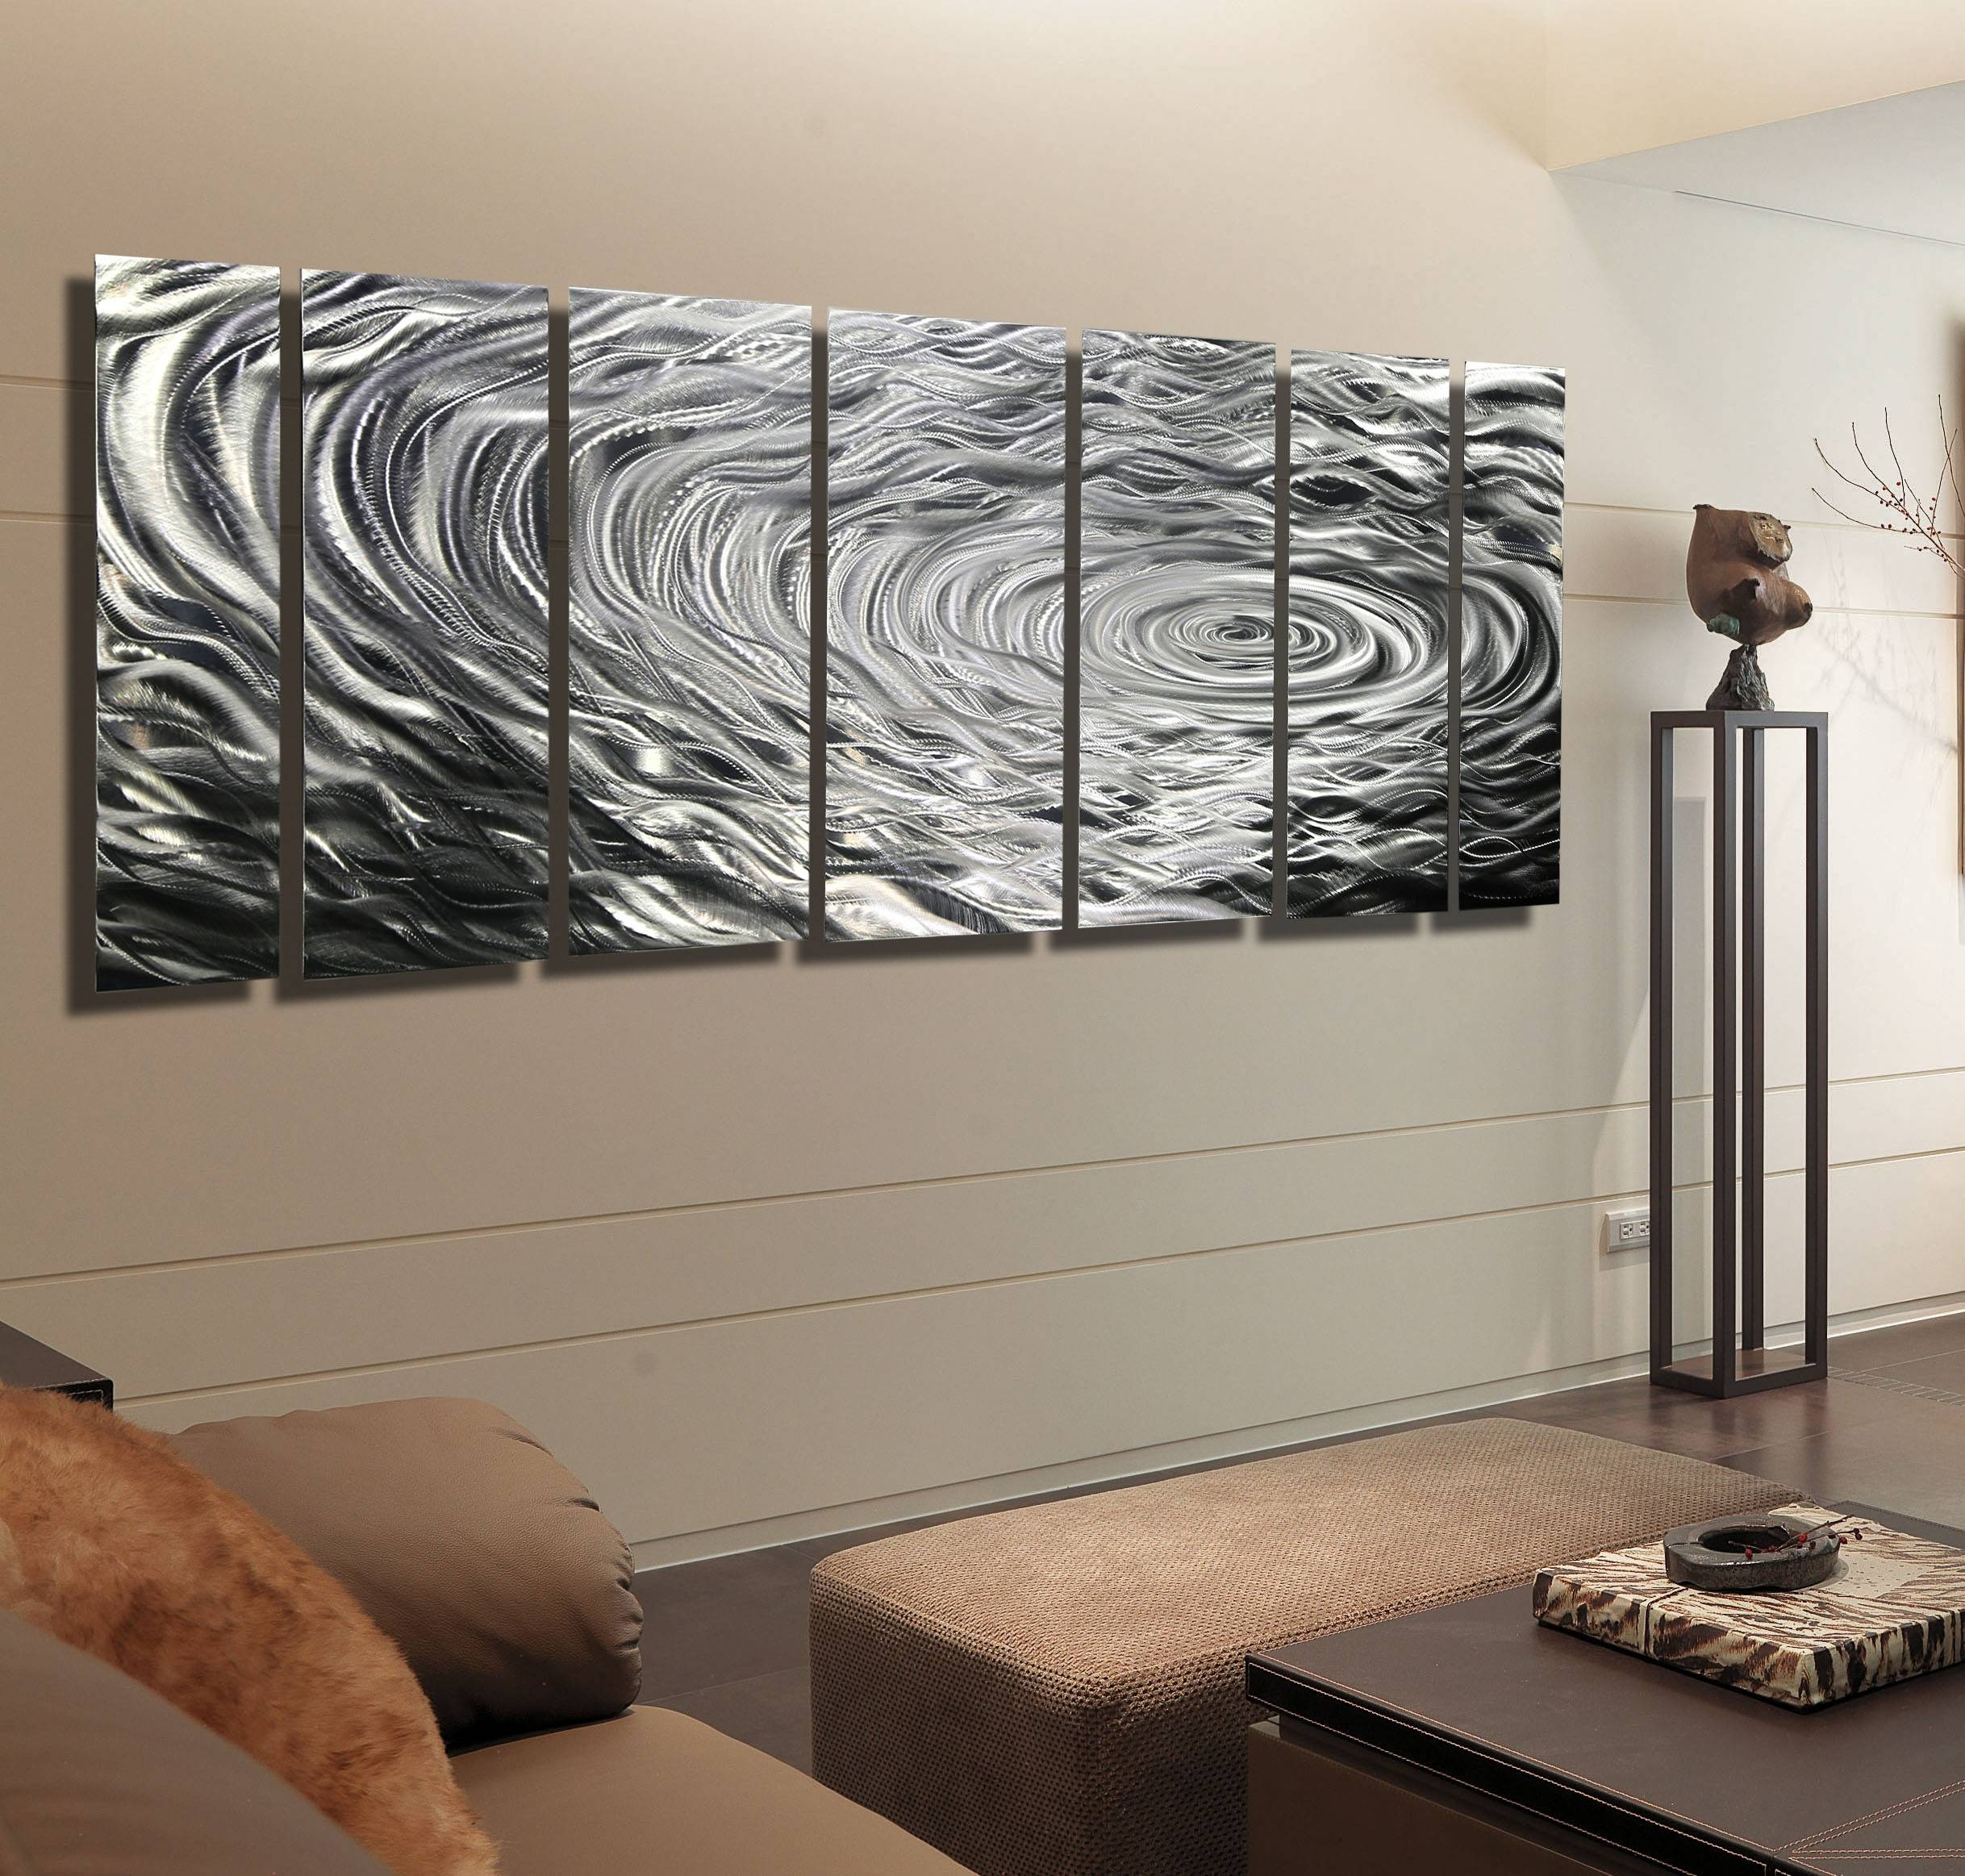 Ripple Effect Xl – Silver Abstract Corporate Metal Wall Art Decor In Best And Newest Modern Metal Wall Art (View 15 of 20)